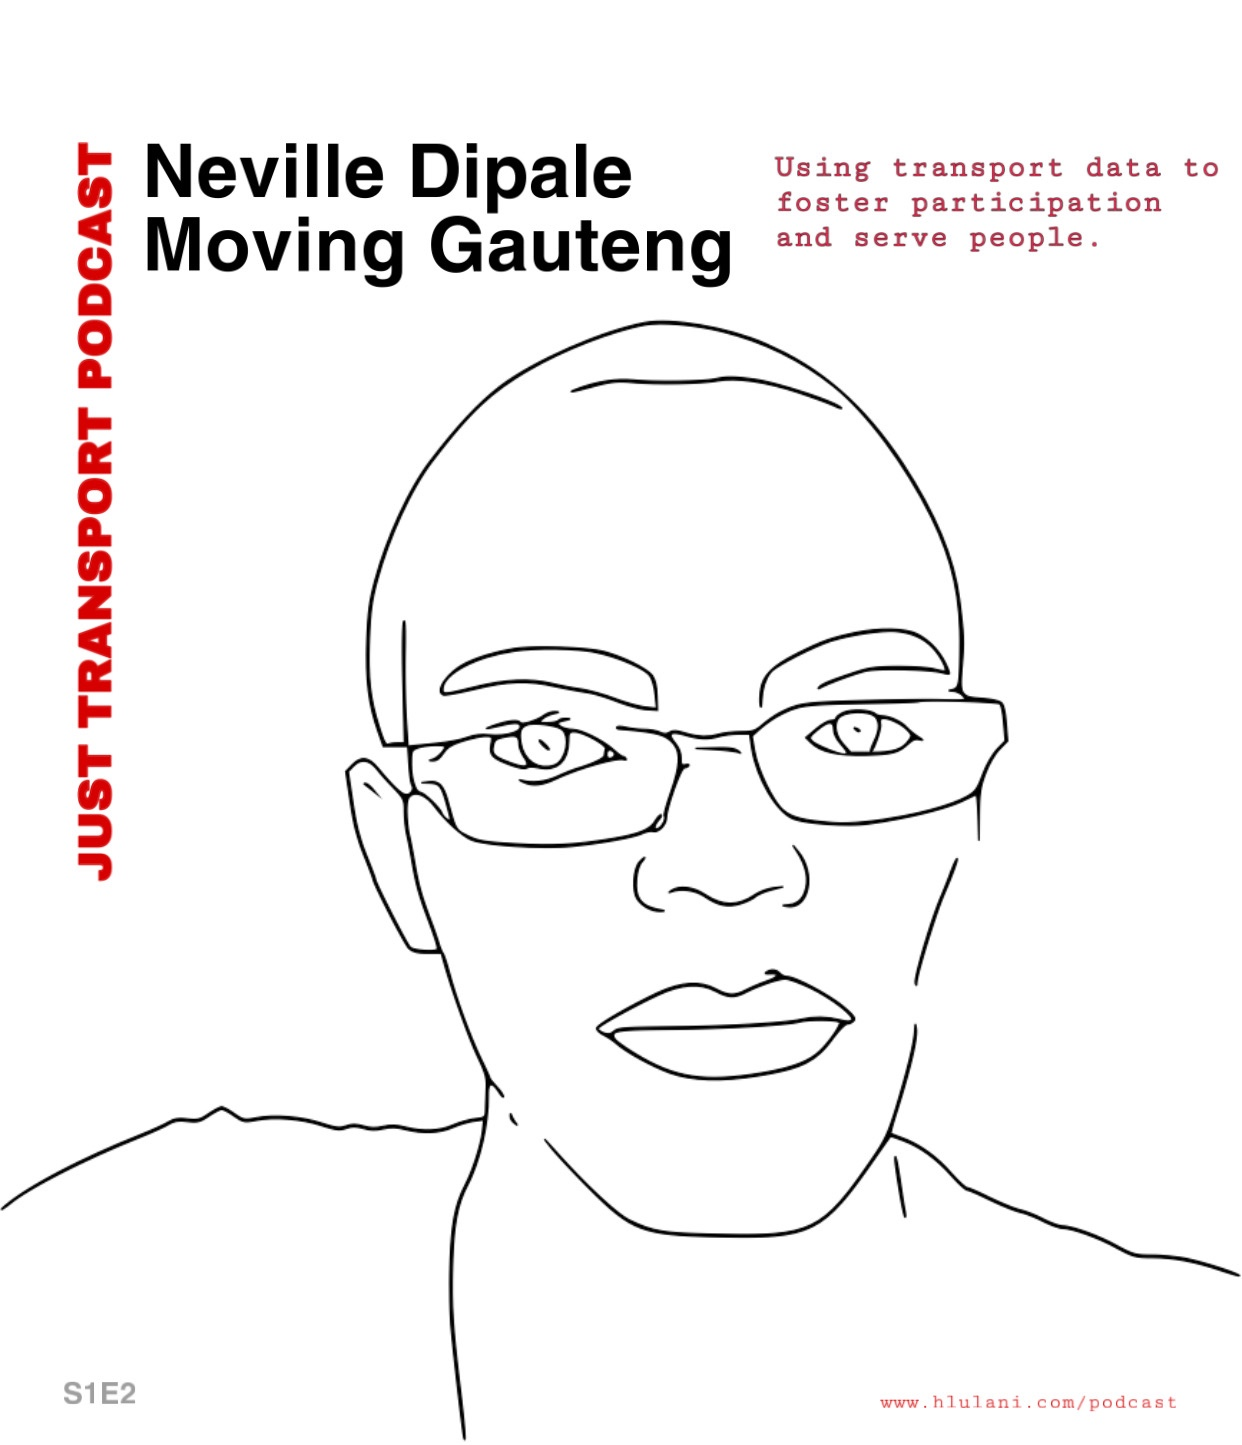 PODCAST #2: Neville Dipale, Moving Gauteng